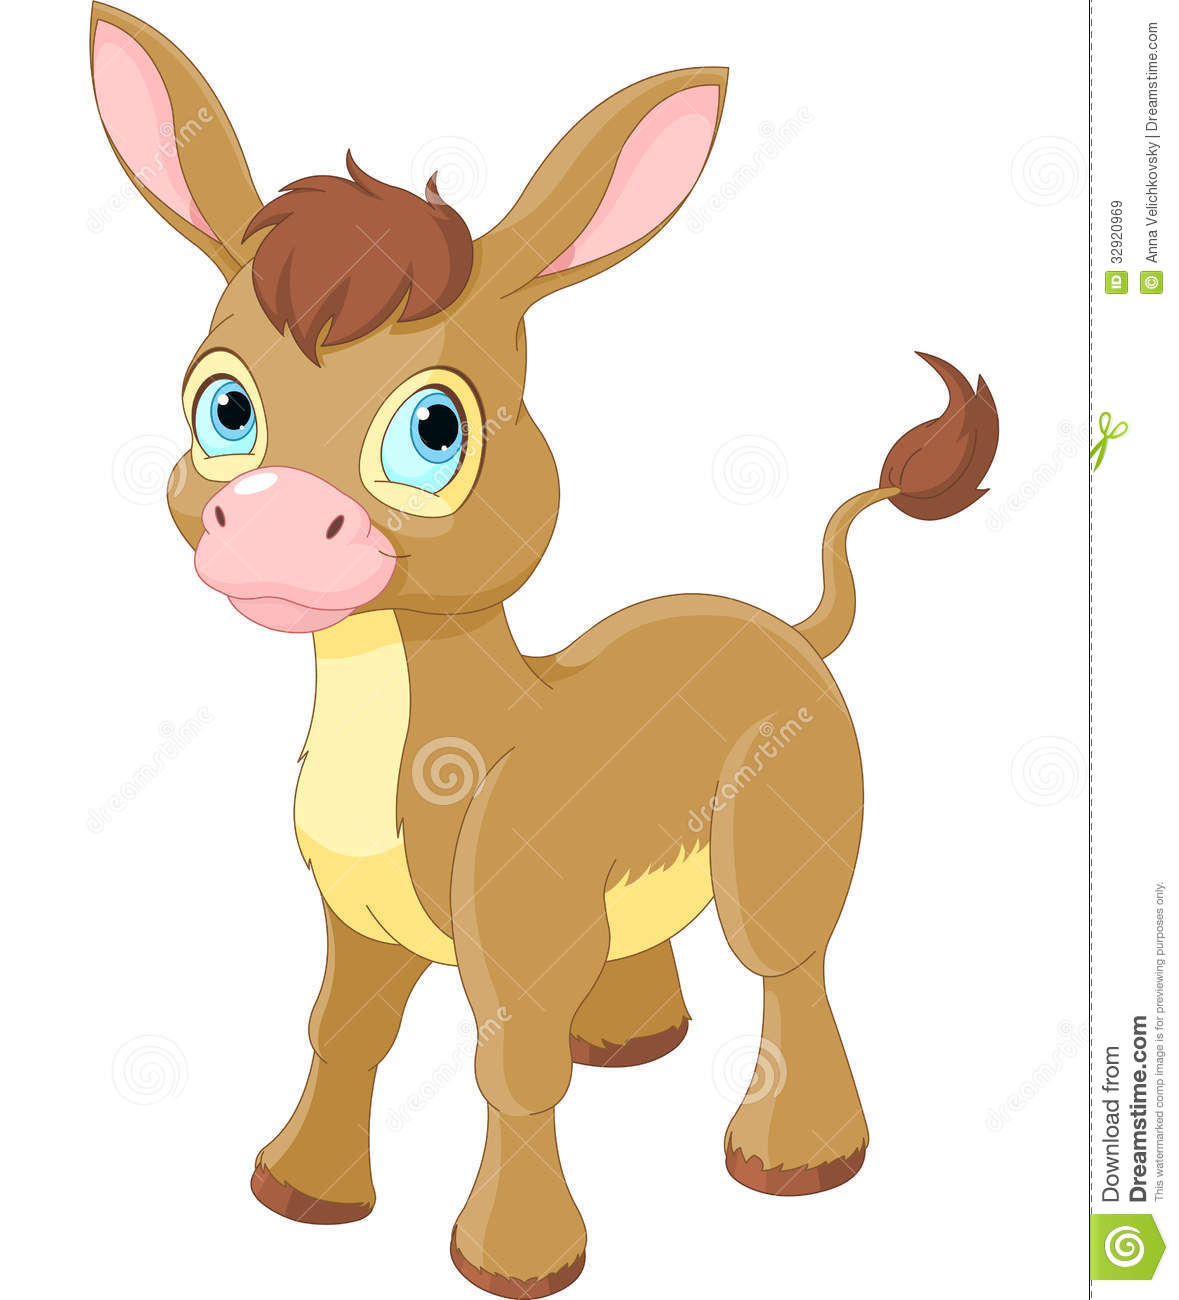 Similiar Baby Donkey Cartoon Keywords.